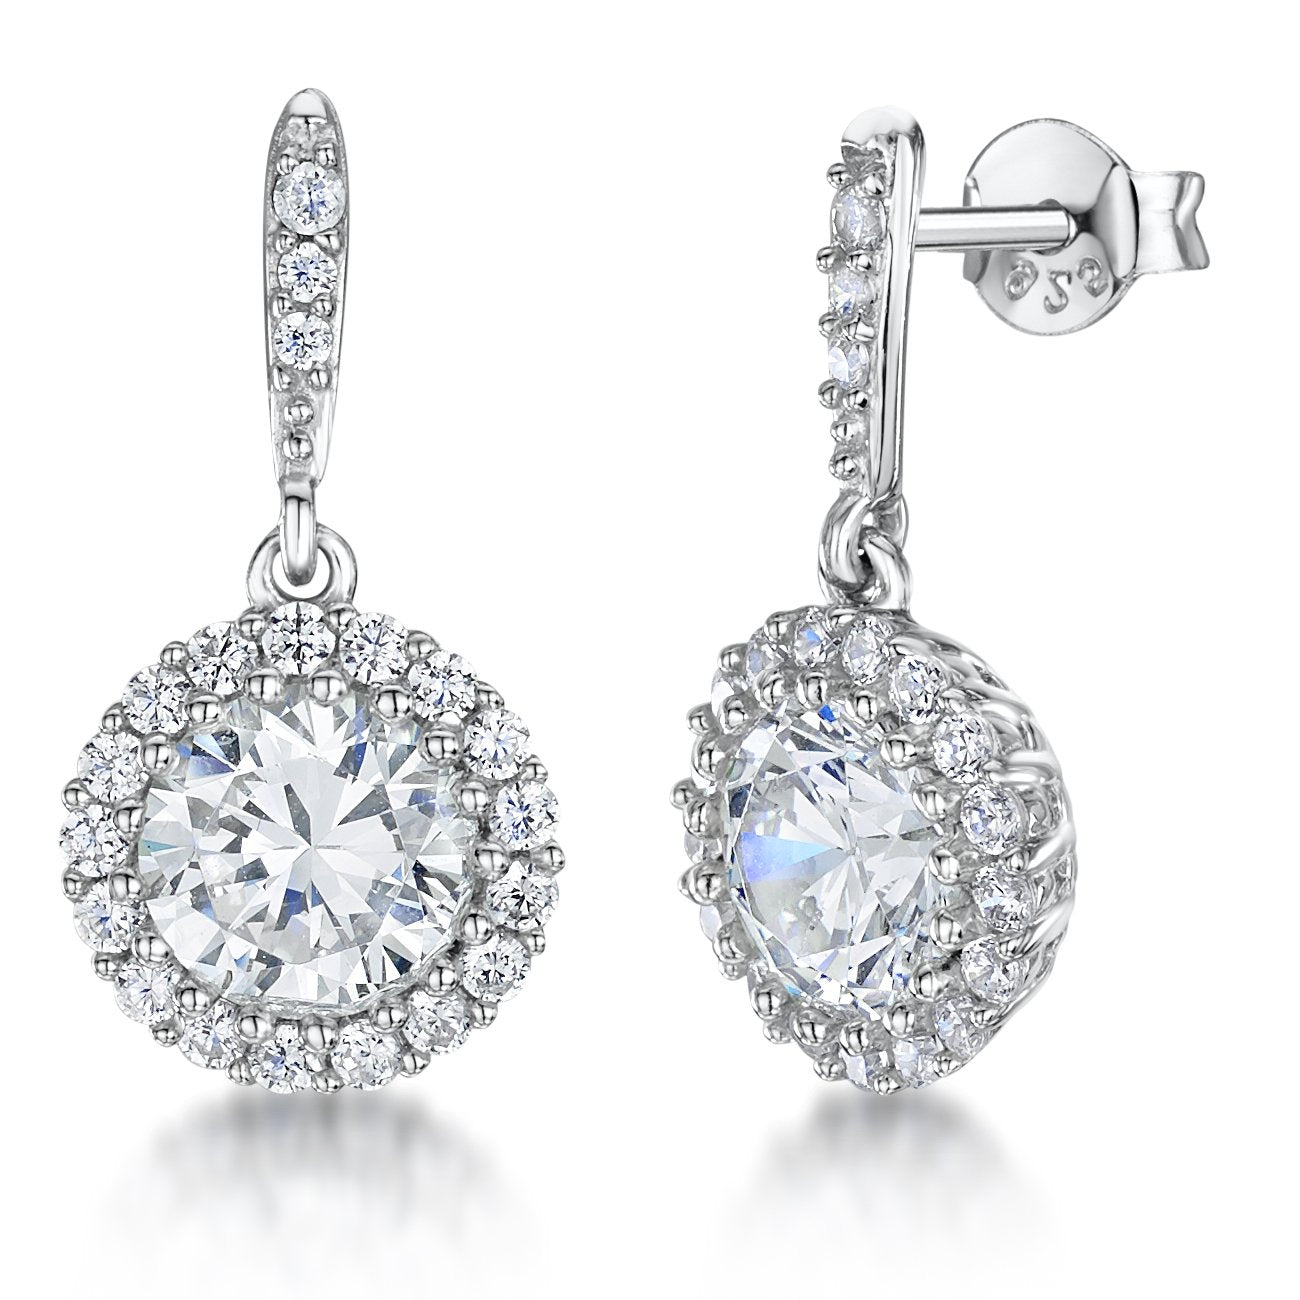 Sterling Silver Halo Drop Stud  Earrings Featuring A Brilliant Cut Round 3.87 Carat  Cubic Zirconia And Stone Surround - JOOLS By Jenny Brown